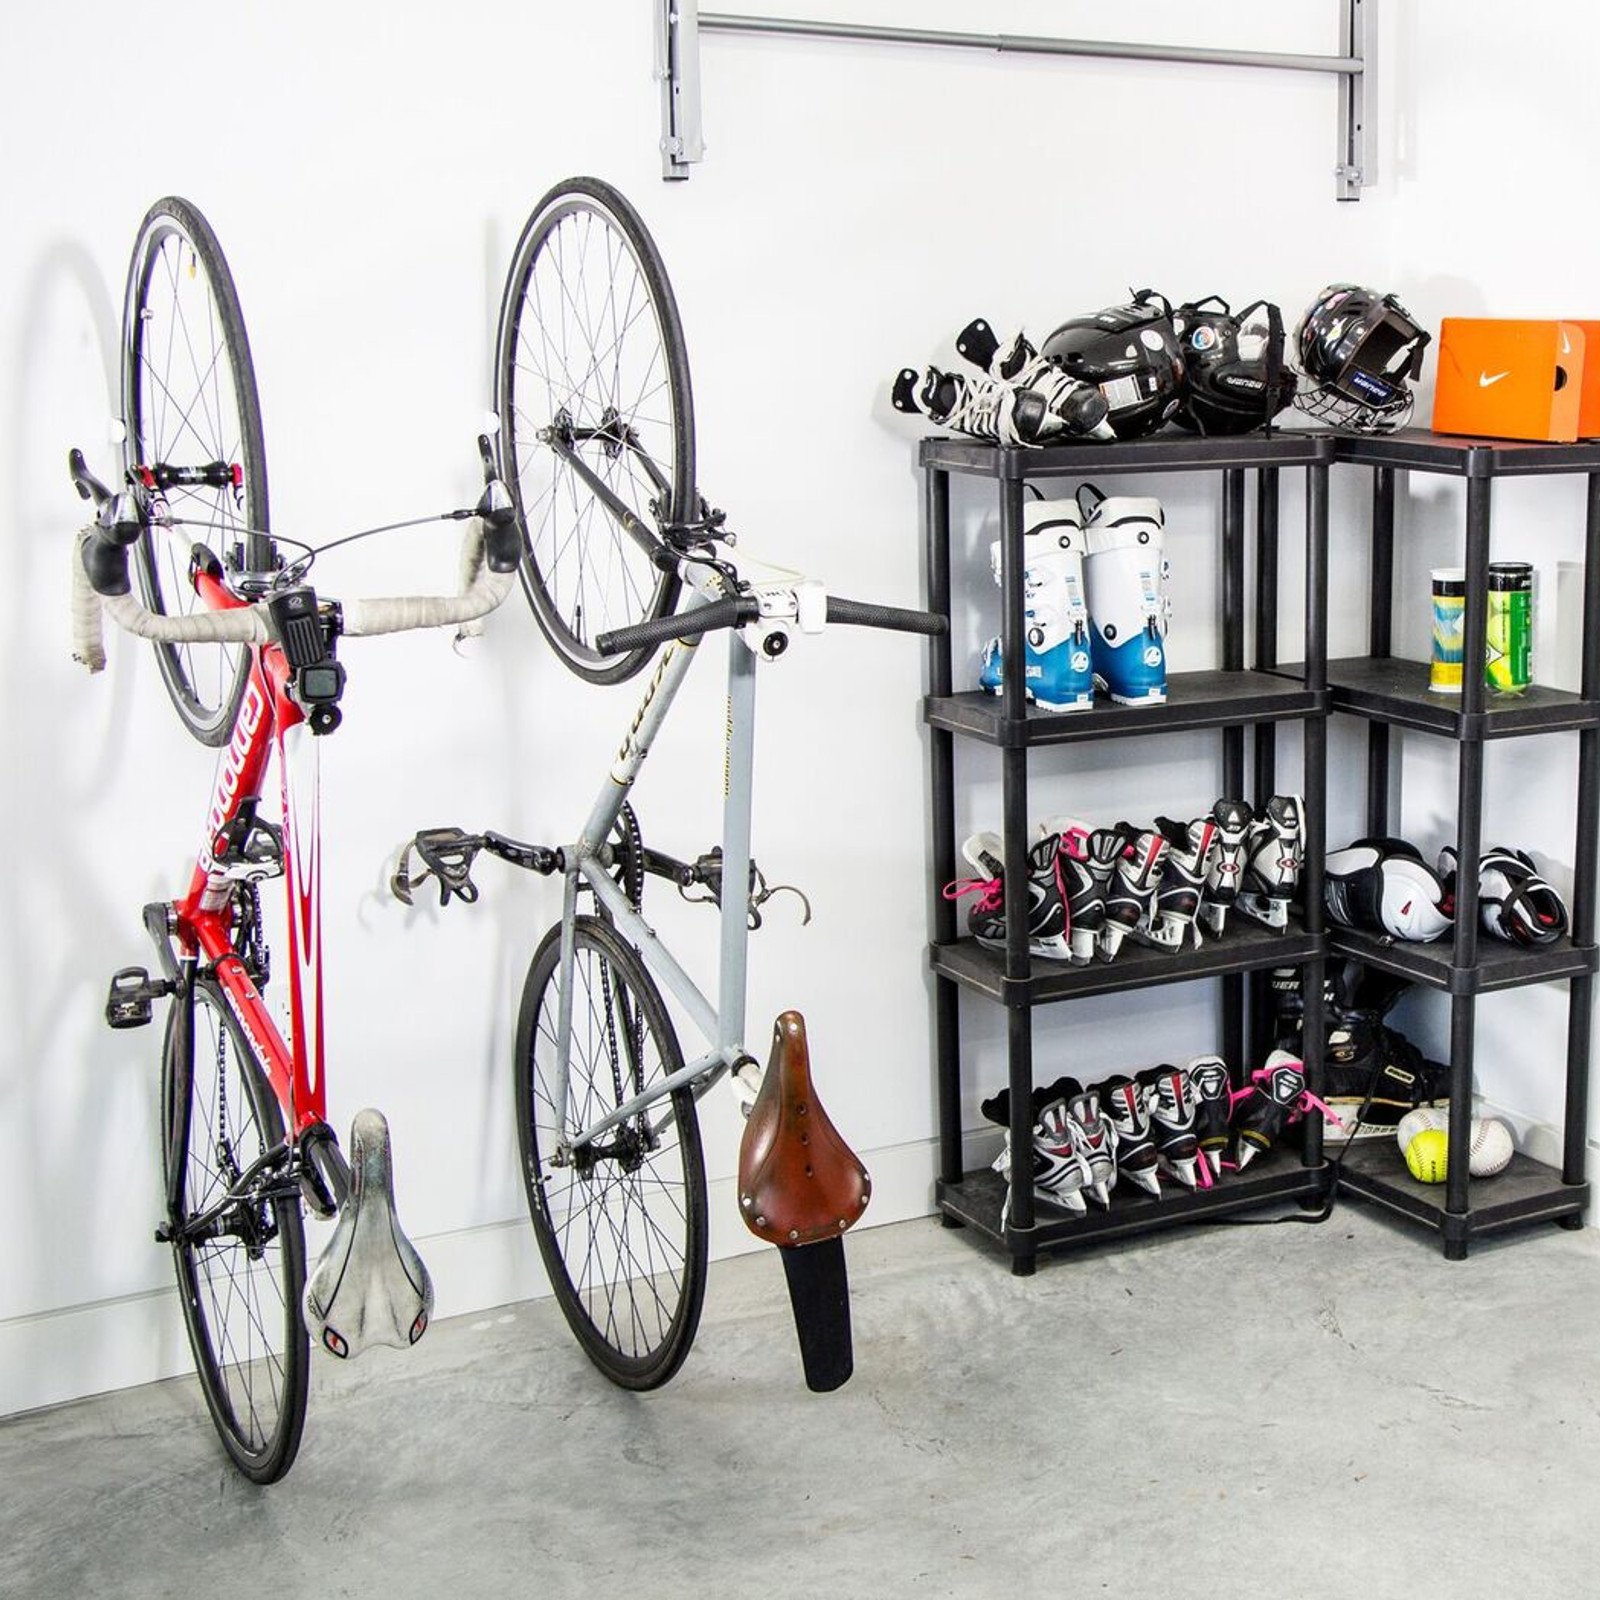 x bike white pipe mounted design regarding wall bicycle size shelfie rack mount homemade on hook with